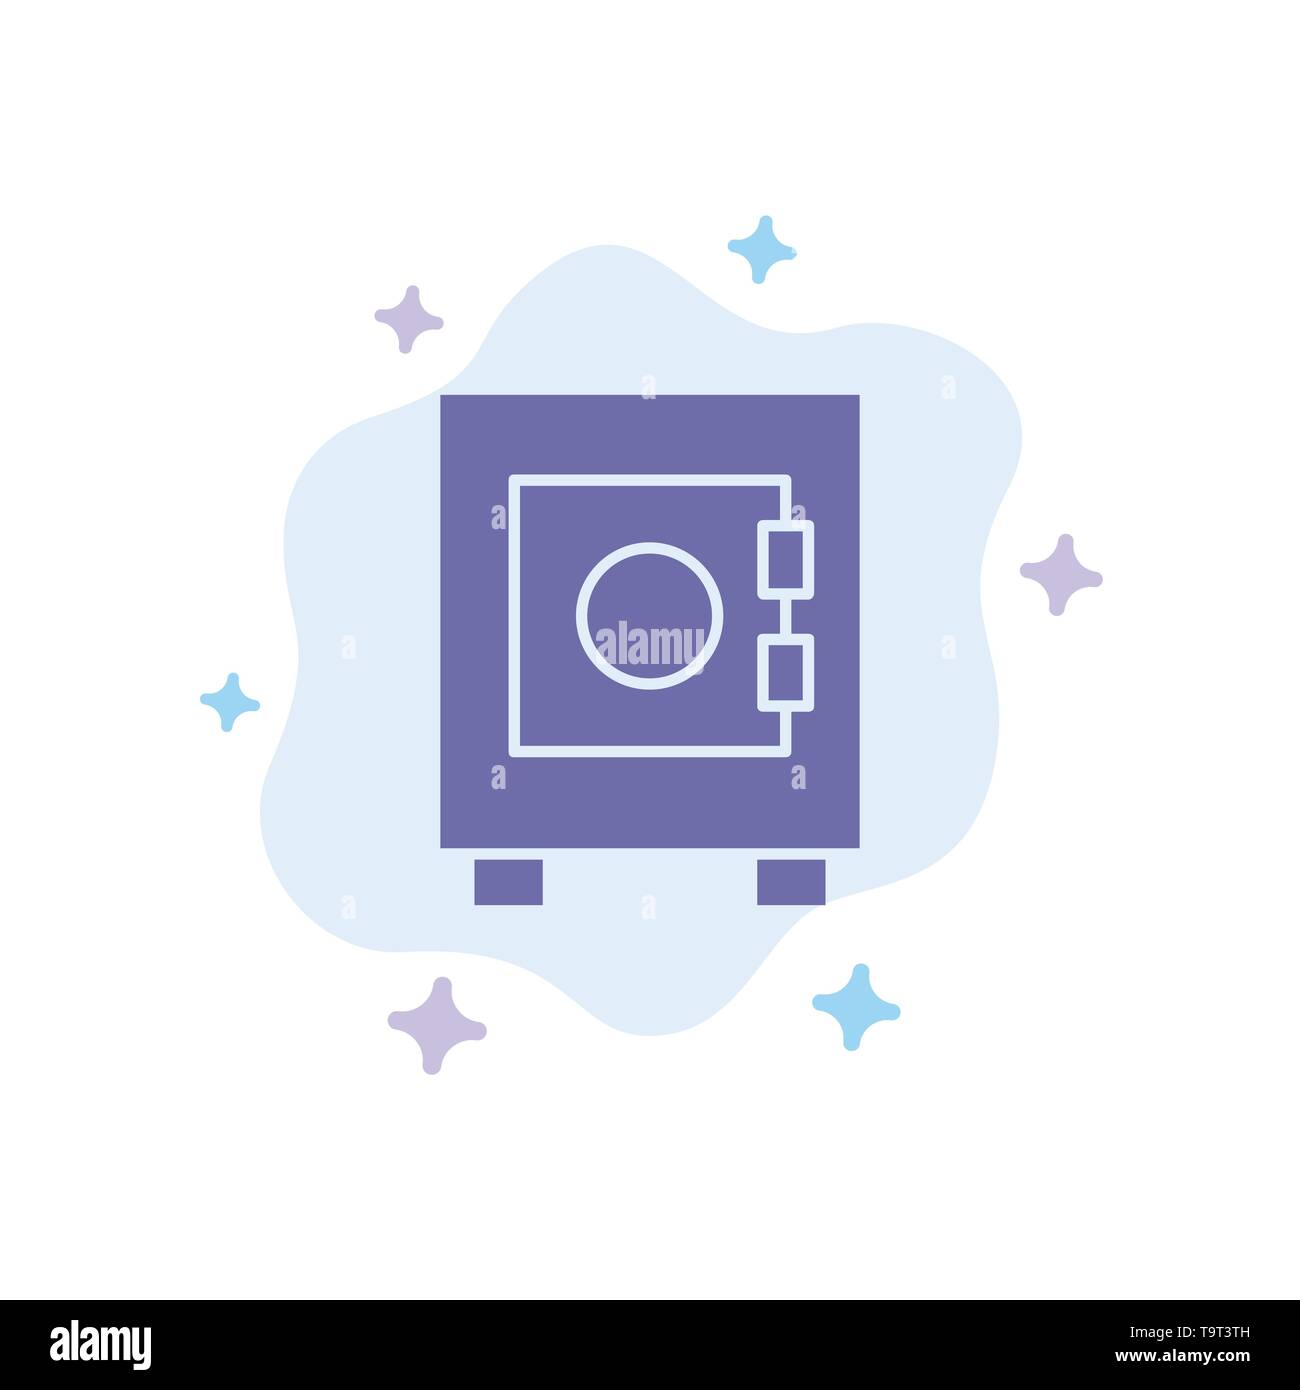 Locker, Lock, User Blue Icon on Abstract Cloud Background - Stock Image